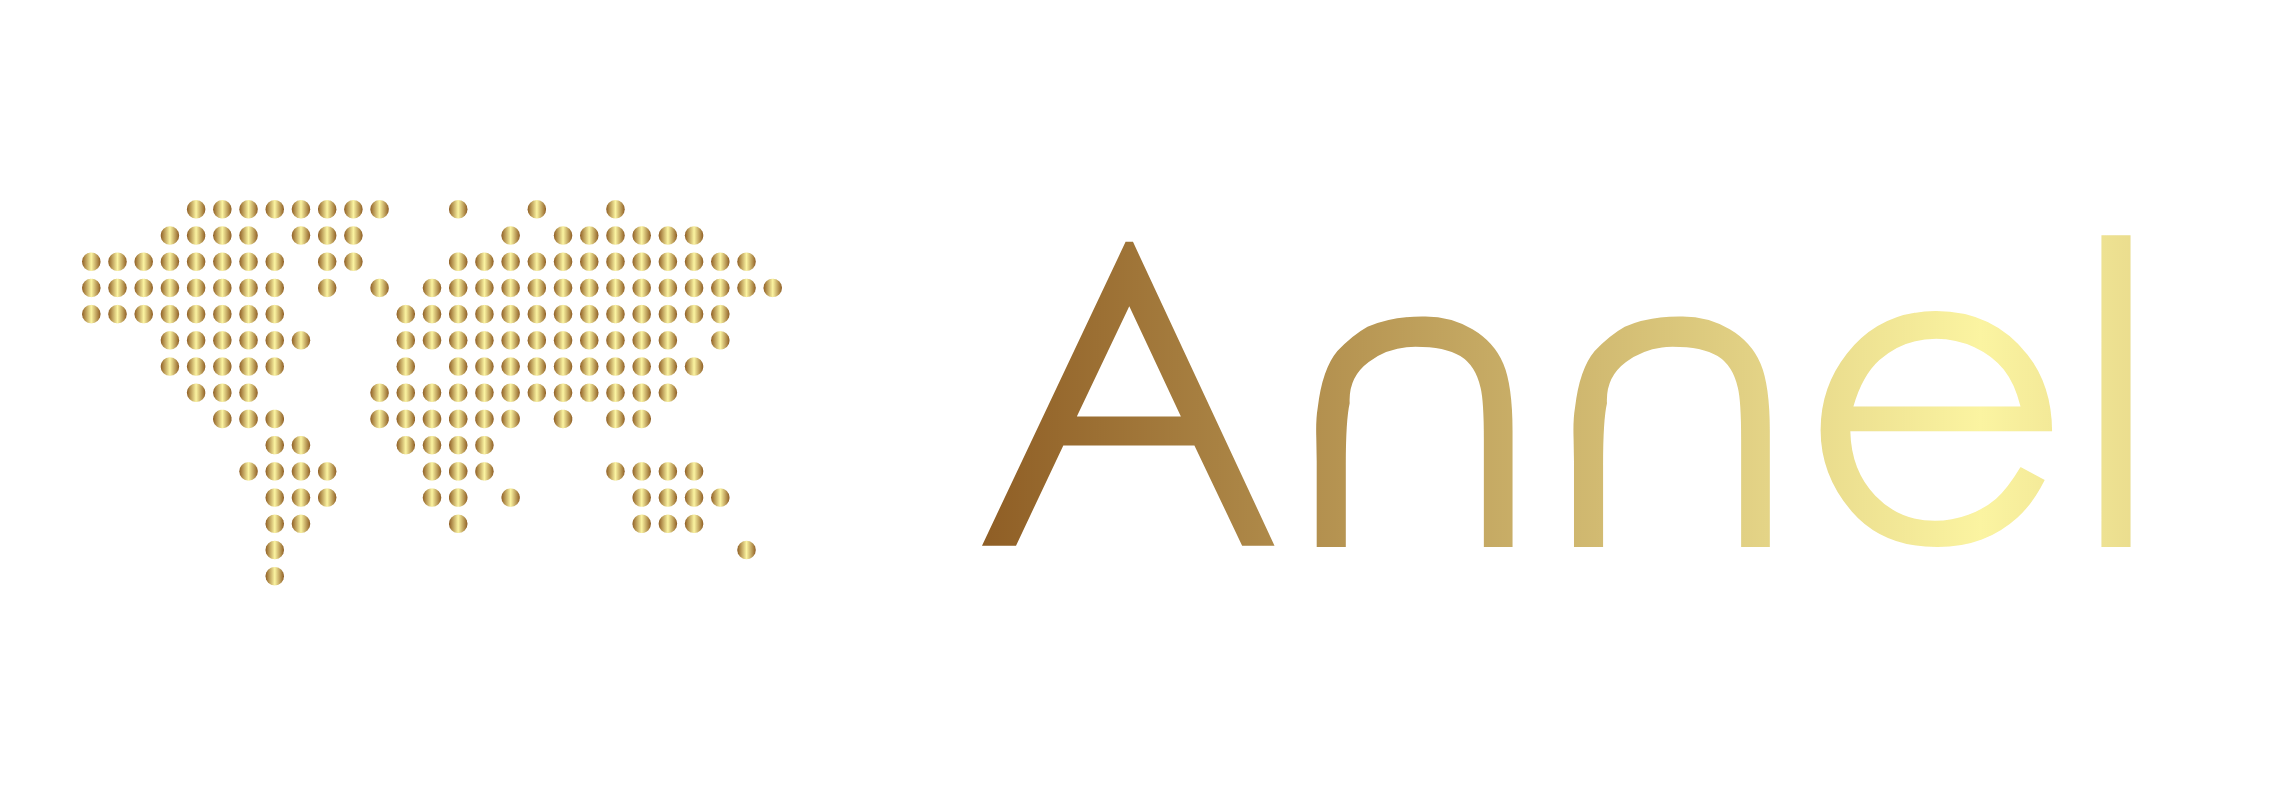 Annel Ltd. with love for cosmetics!